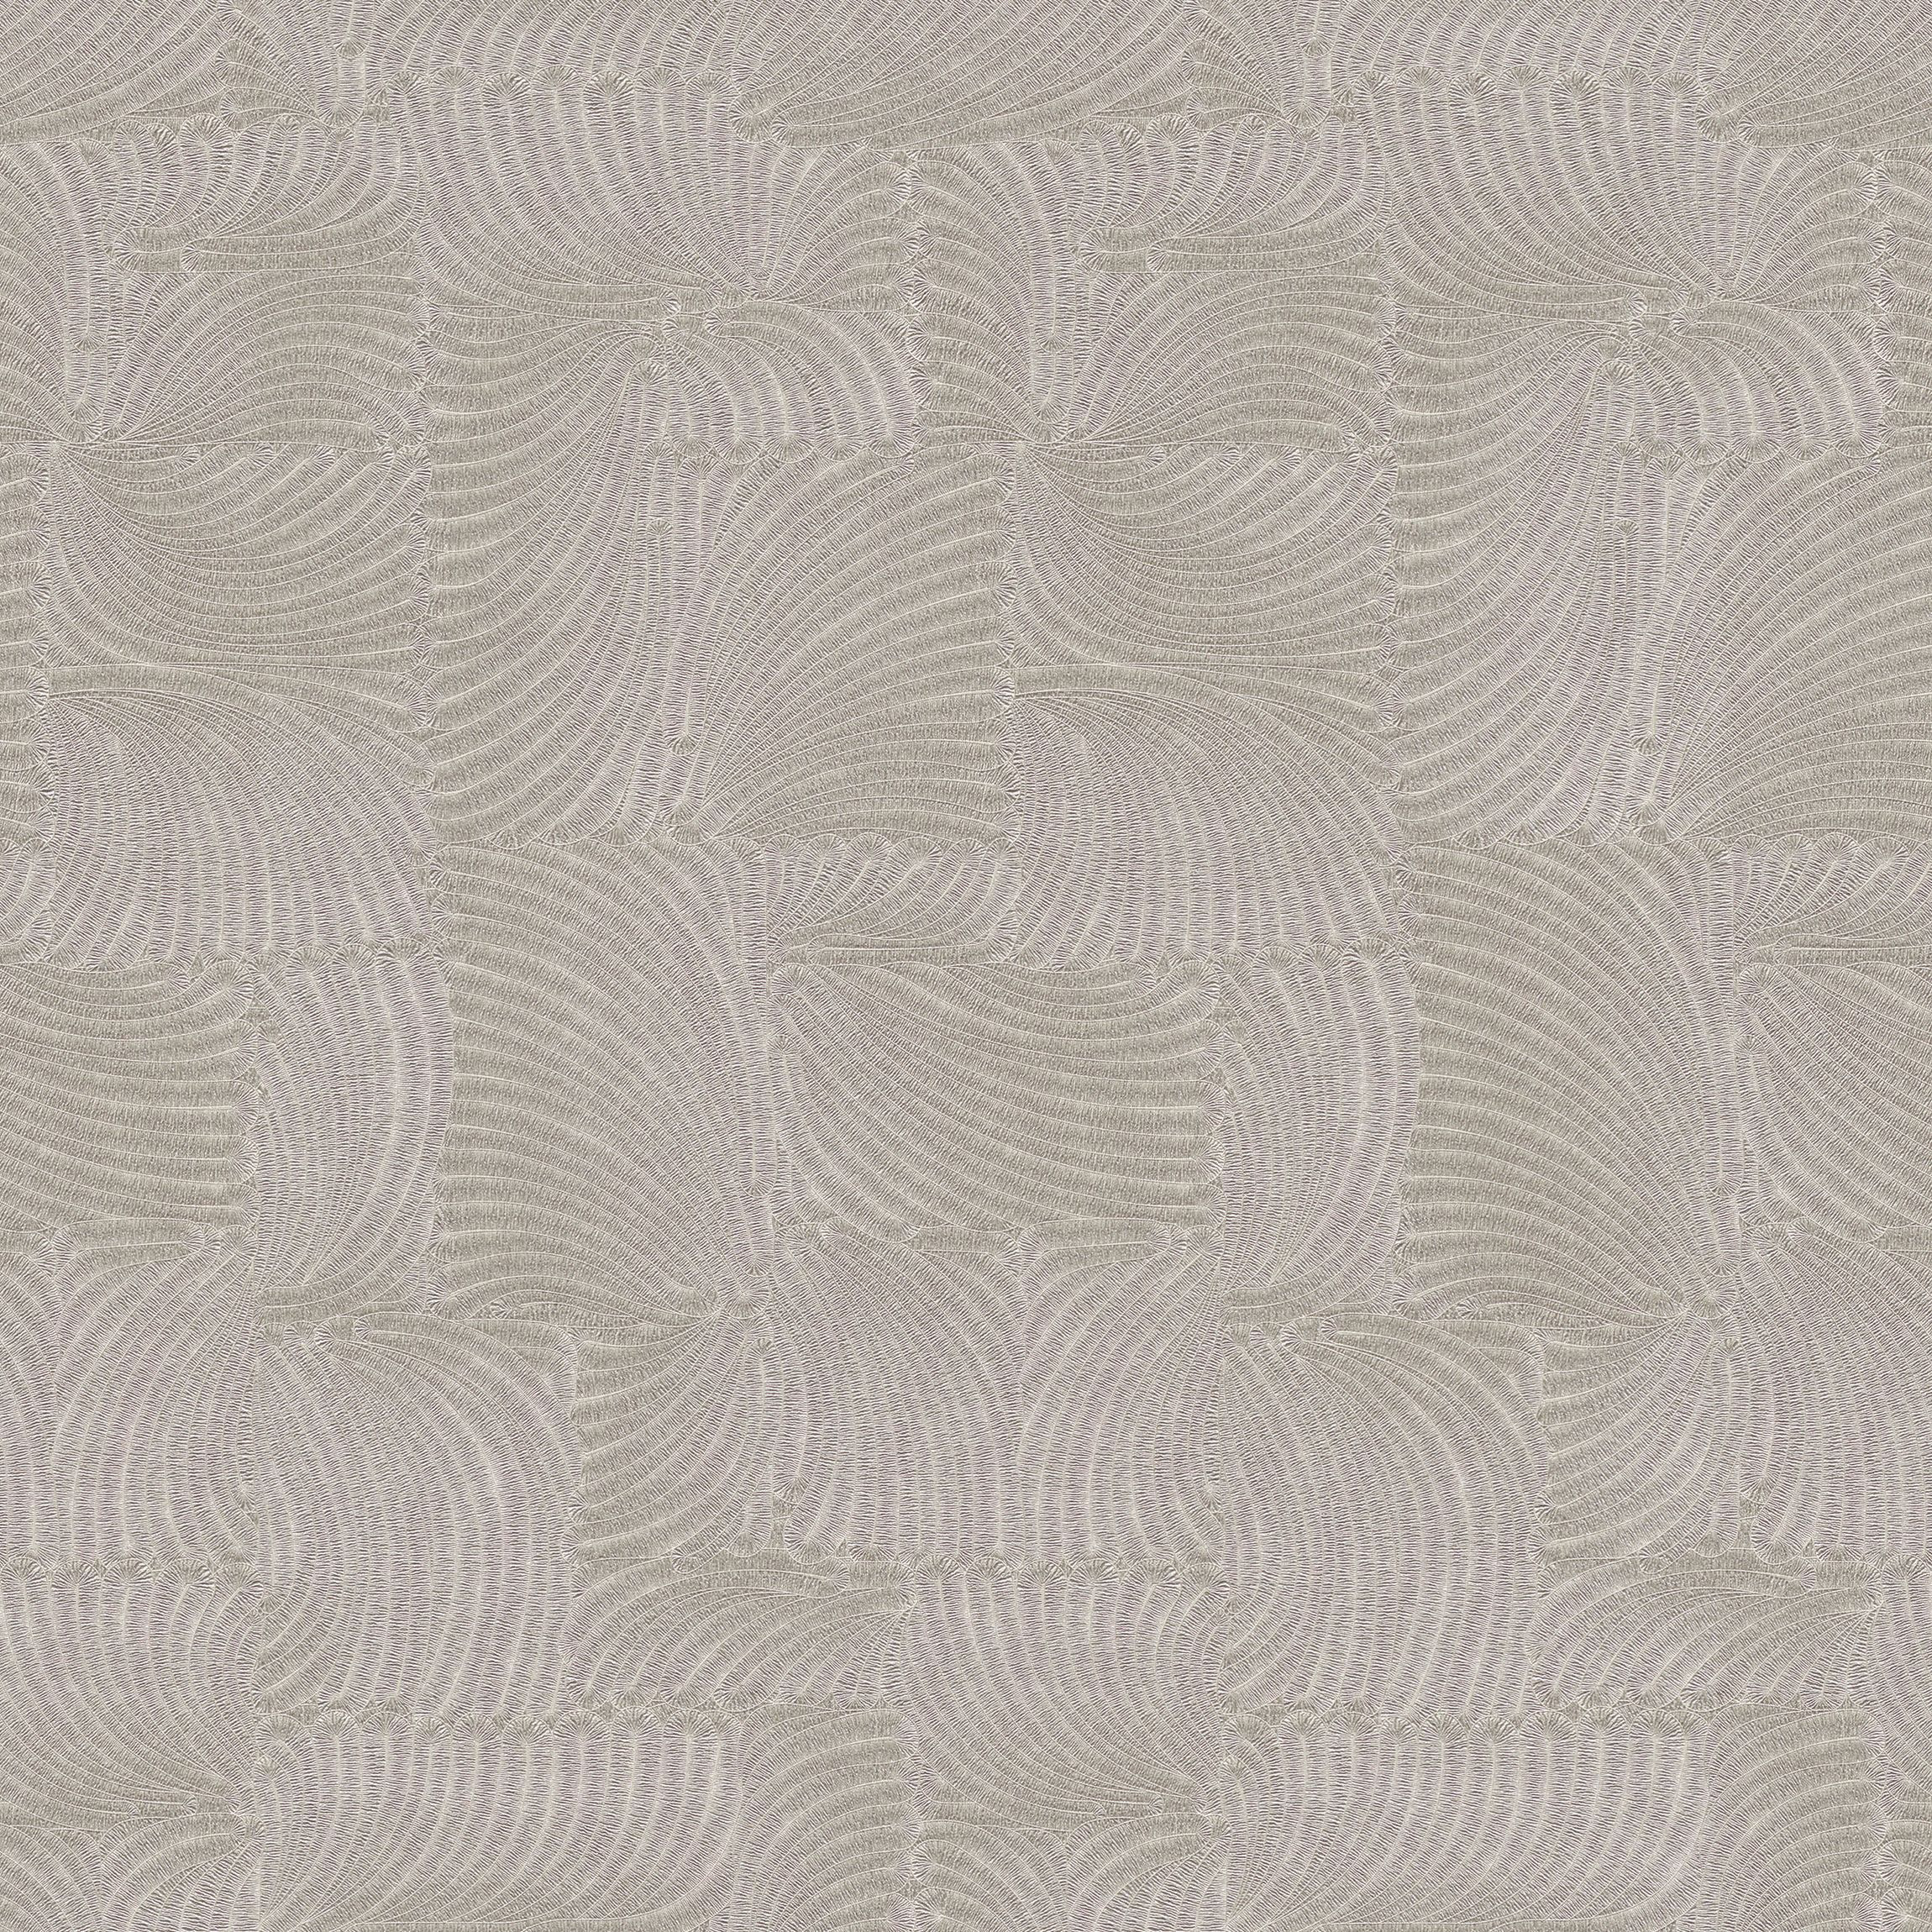 Tapetti Fashion for Walls II V 02480 - 10, 0.53x10.05 m, hopea, non-woven